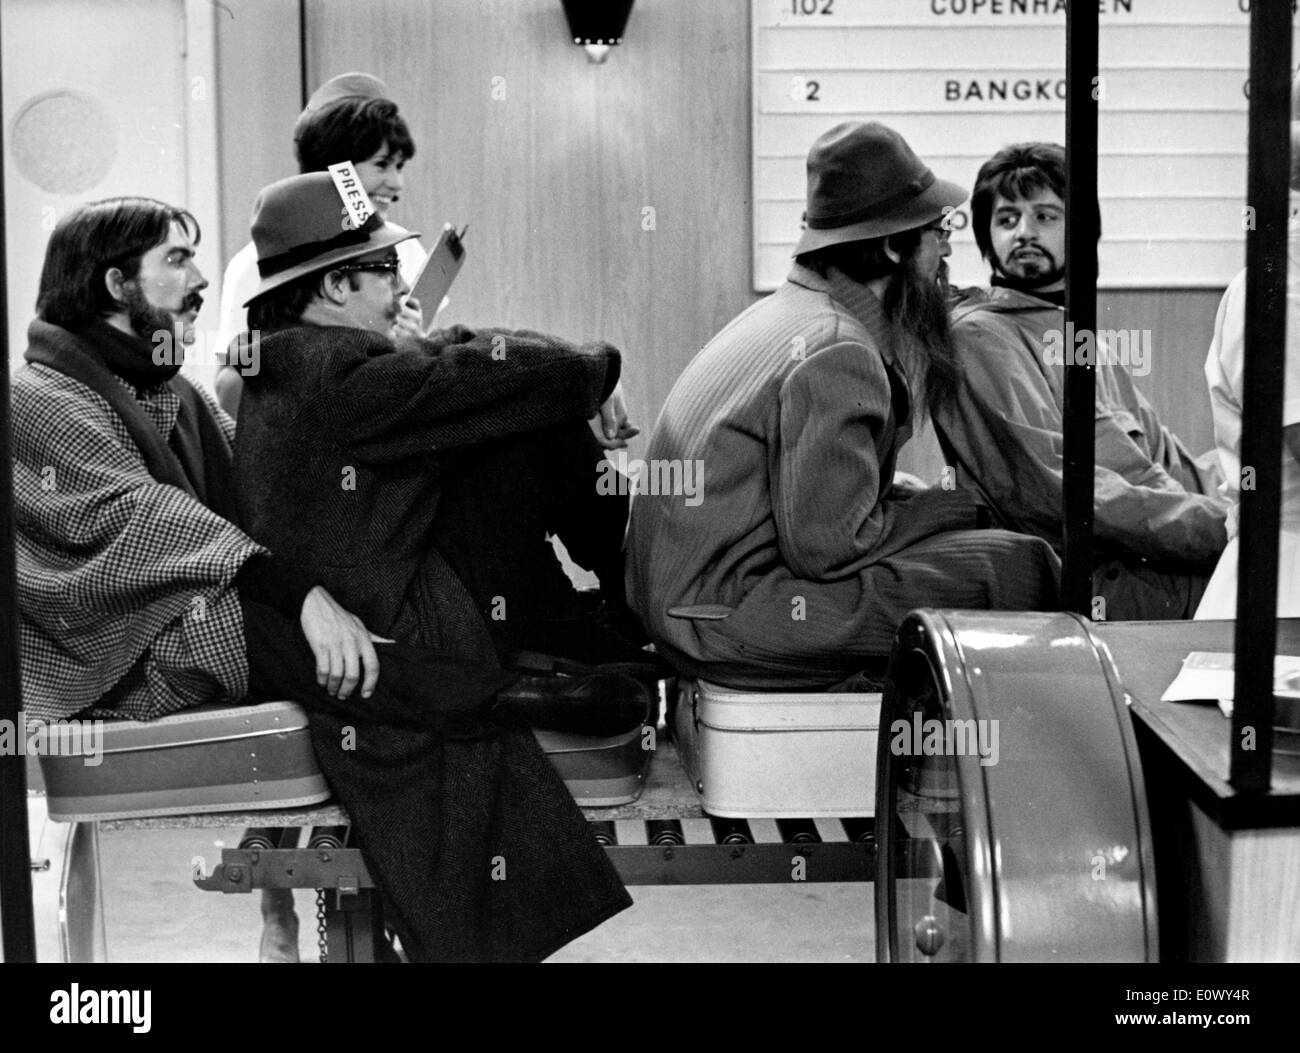 The Beatles riding on the moving luggage band at the airport - Stock Image